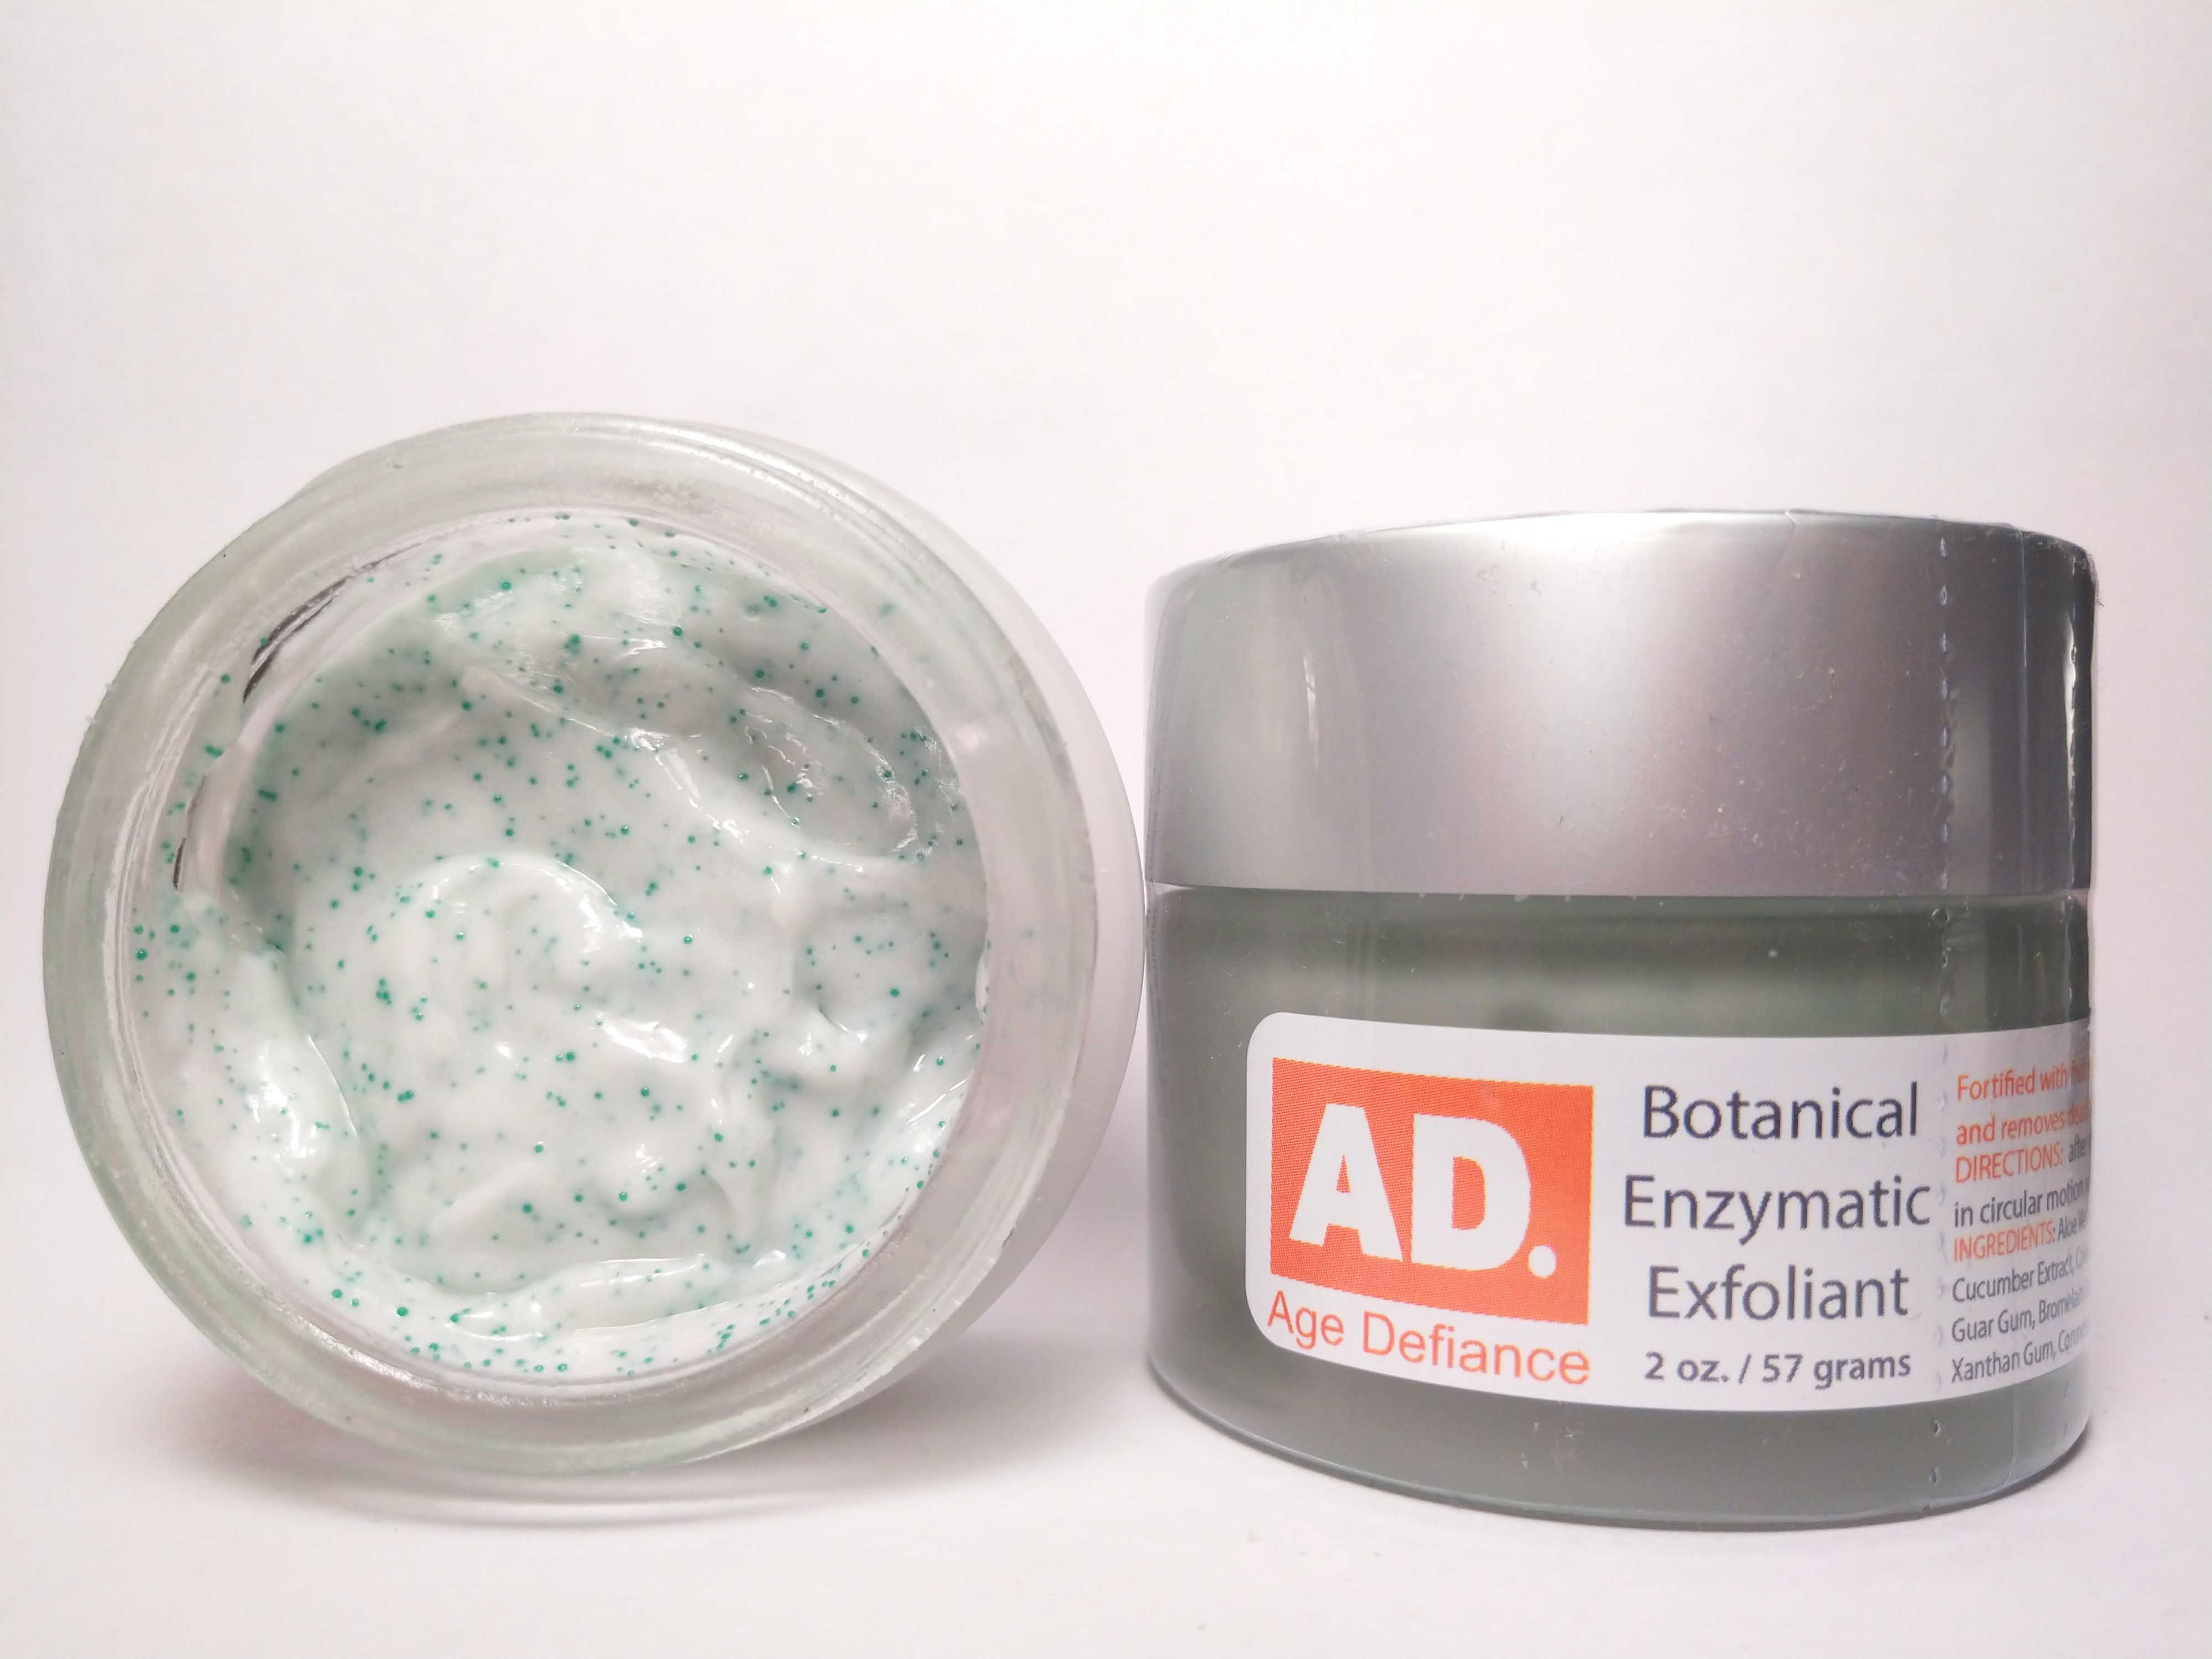 AD Botanical Enymatic Exfoliant wrinkles, age spots, liver spots, skin, wrinkles, hyperpigmentation, routine, cosmetics, beauty secrets, sensitive skin, face, skin care, morning, eyebrows